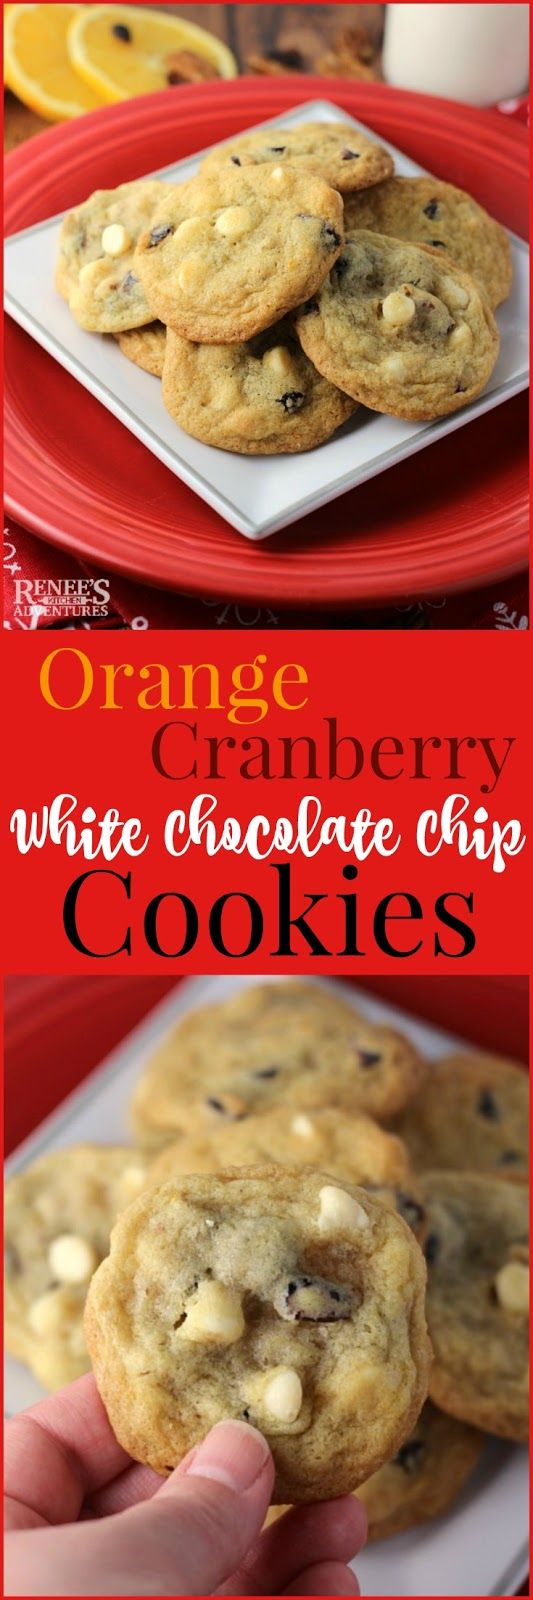 ... drop cookies flavored with orange, cranberries, white chocolate chips